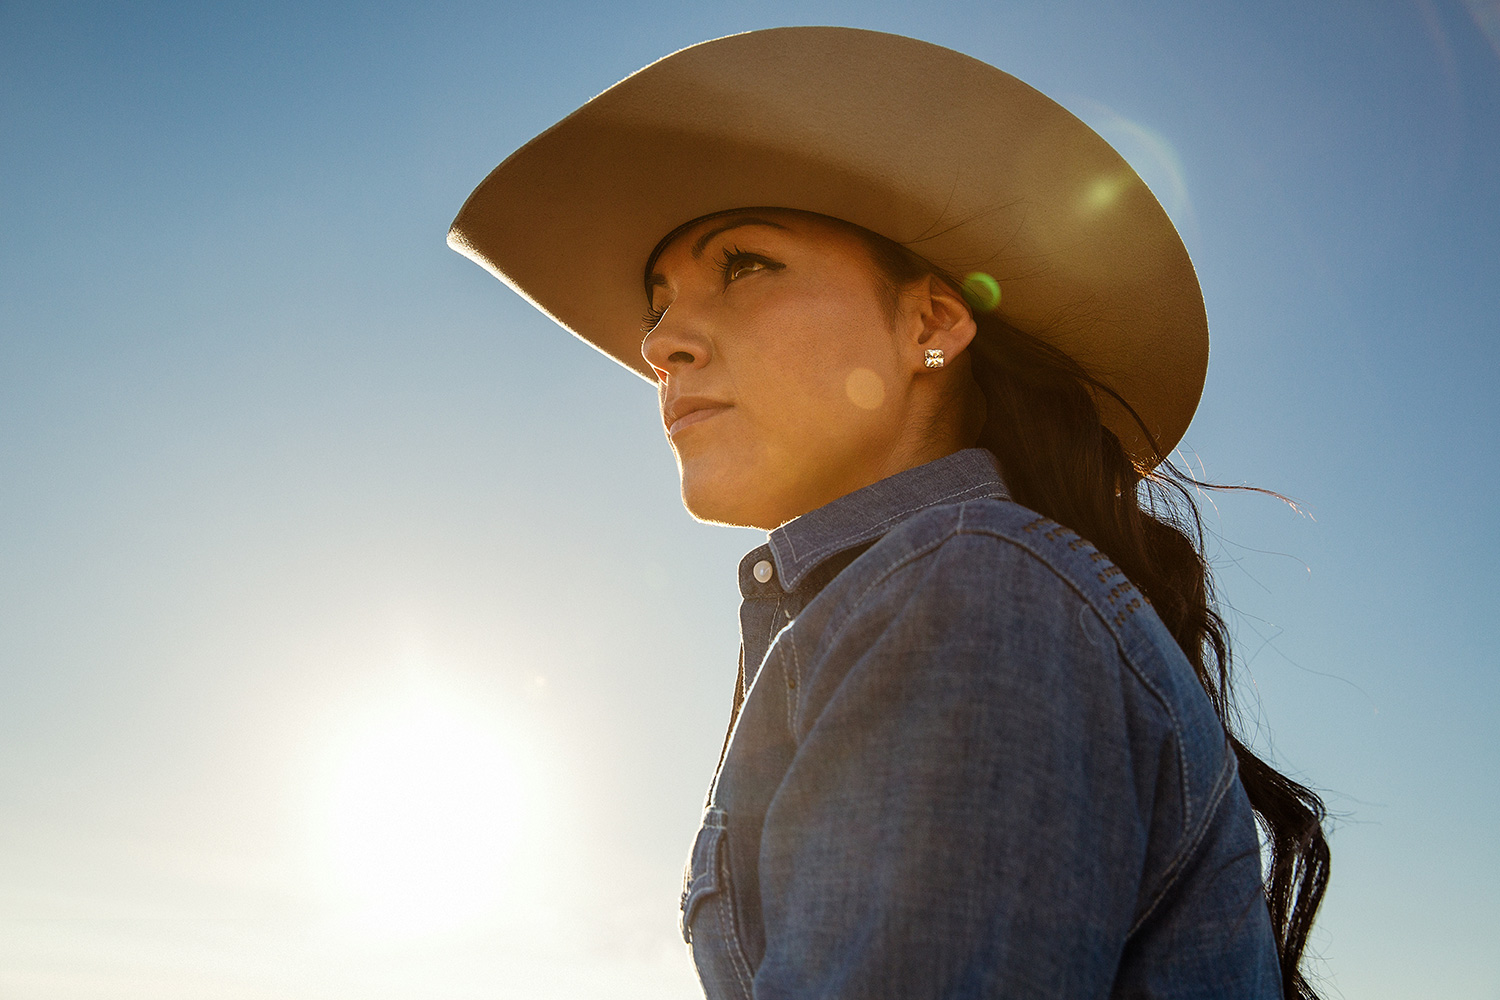 Sunny Cowgirl